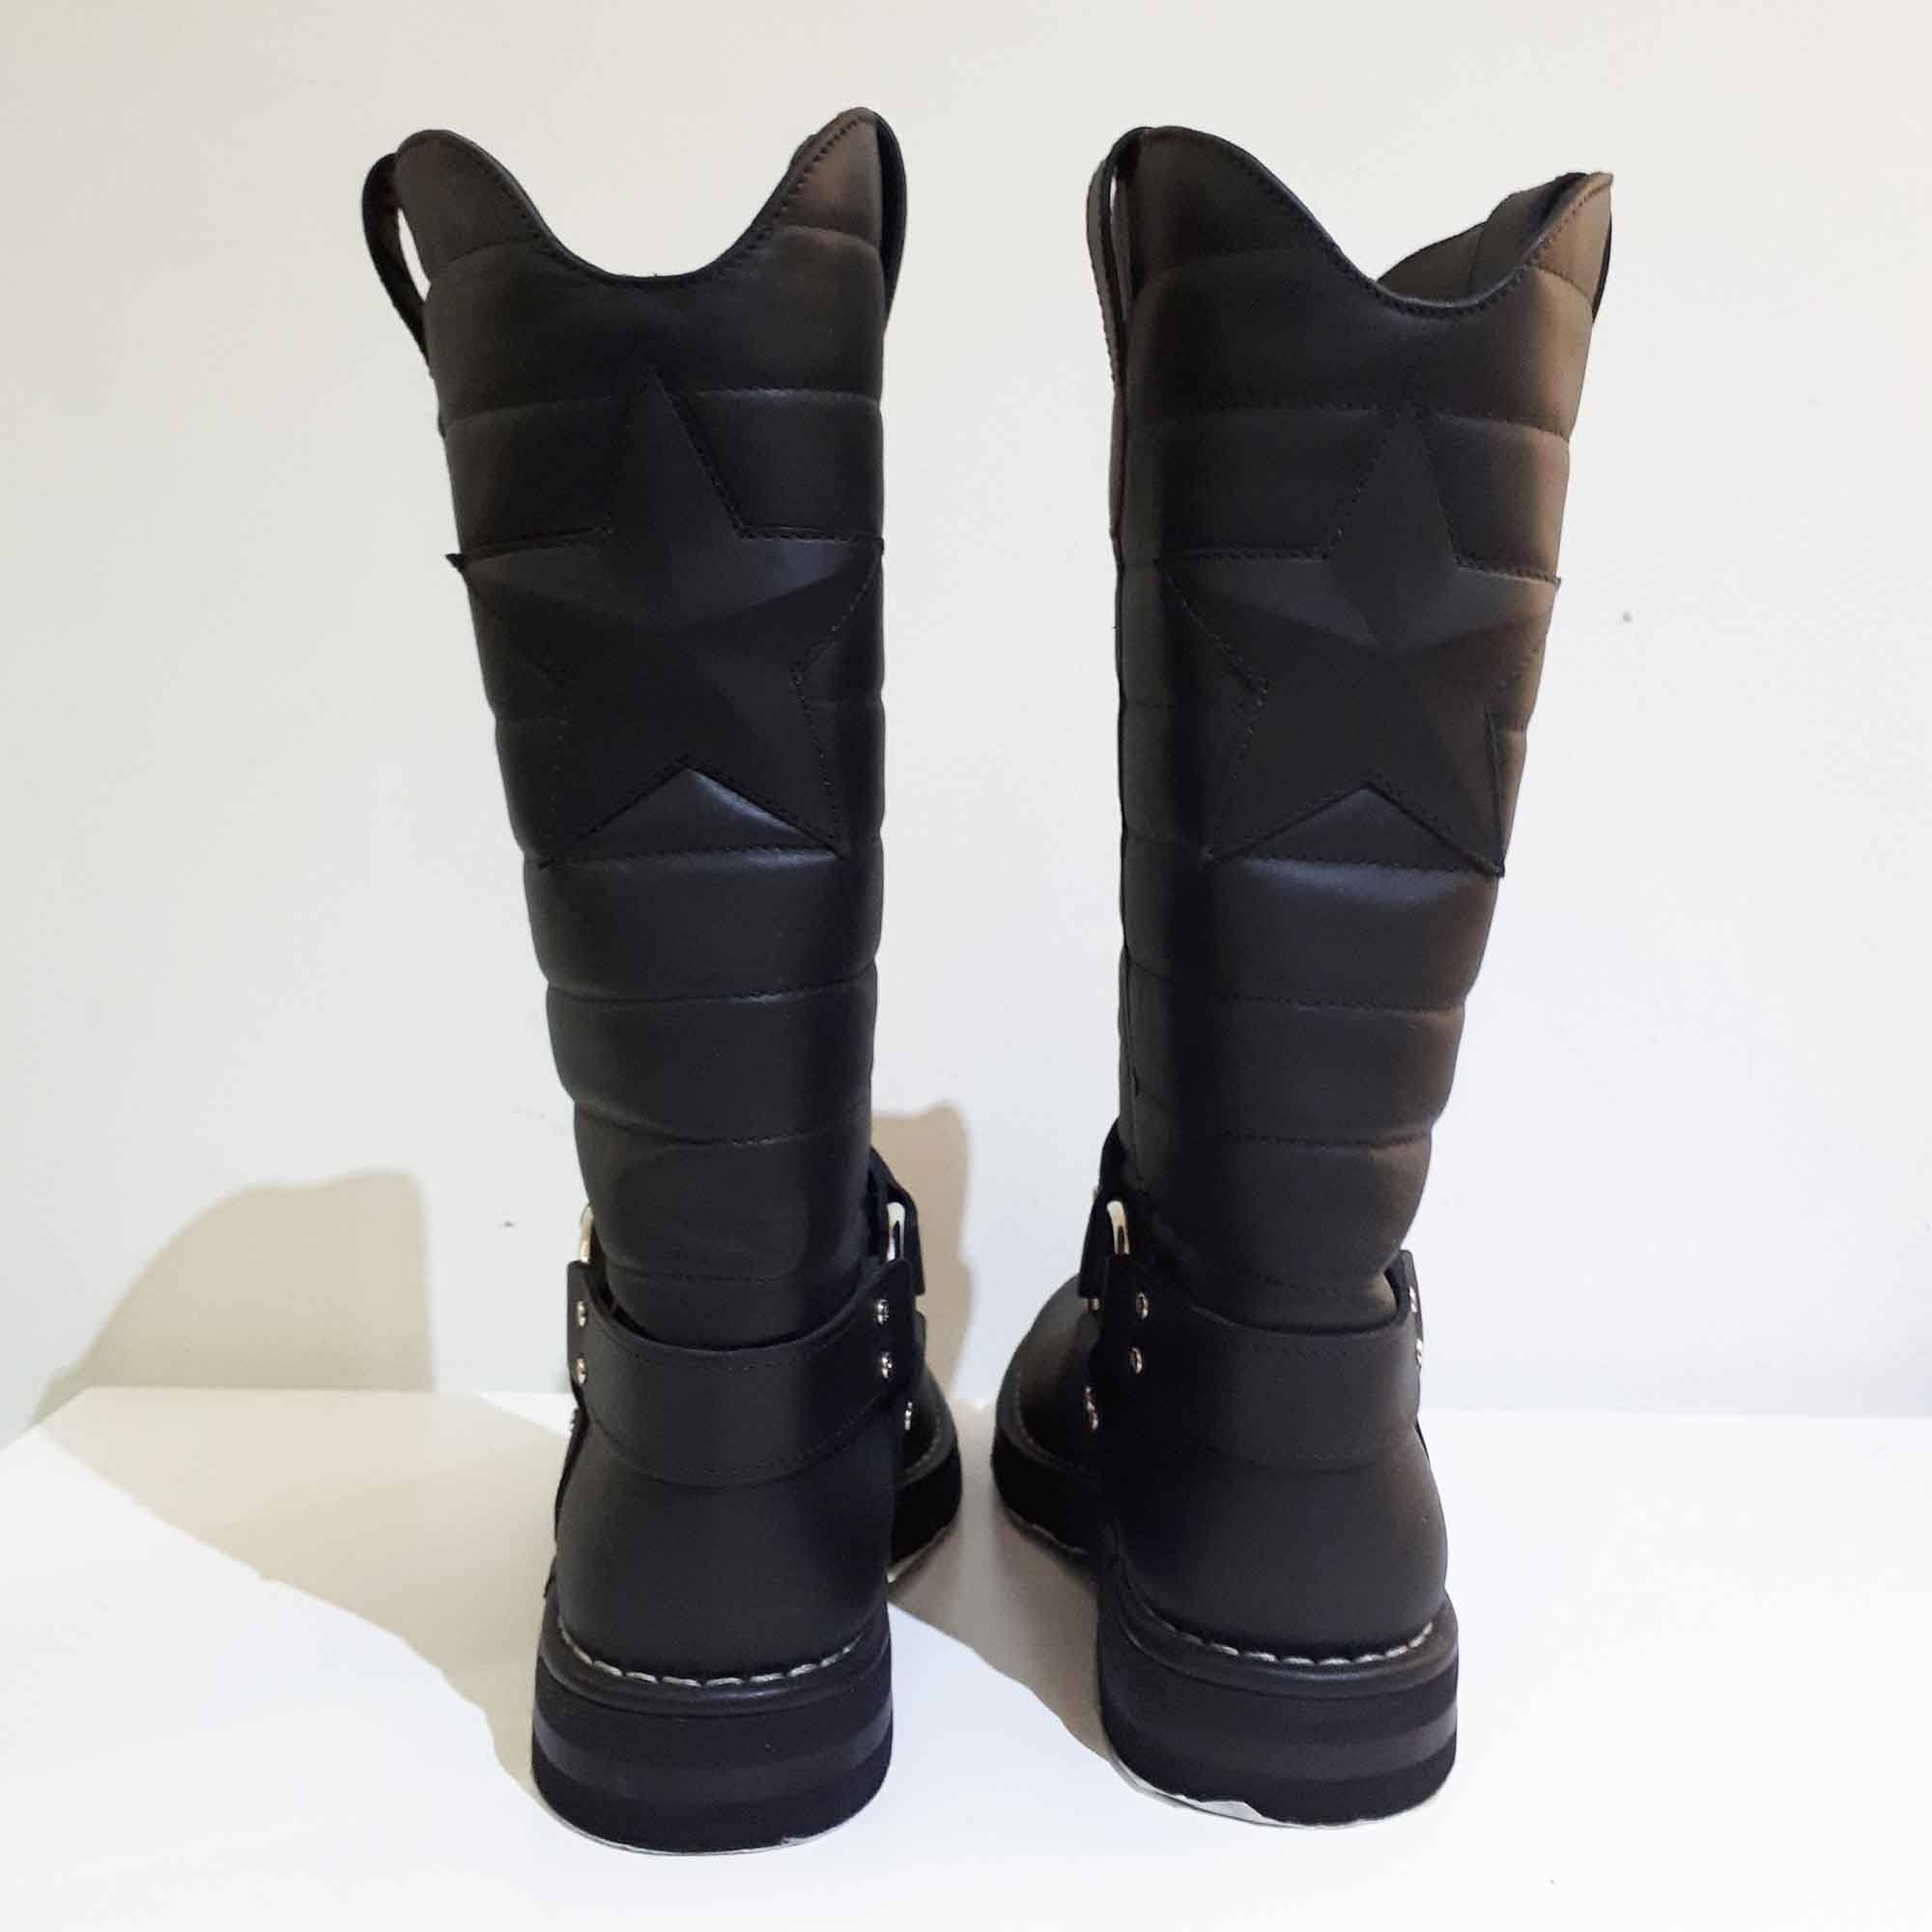 Chanel Quilted Leather Star Harness Motorcycle Boots